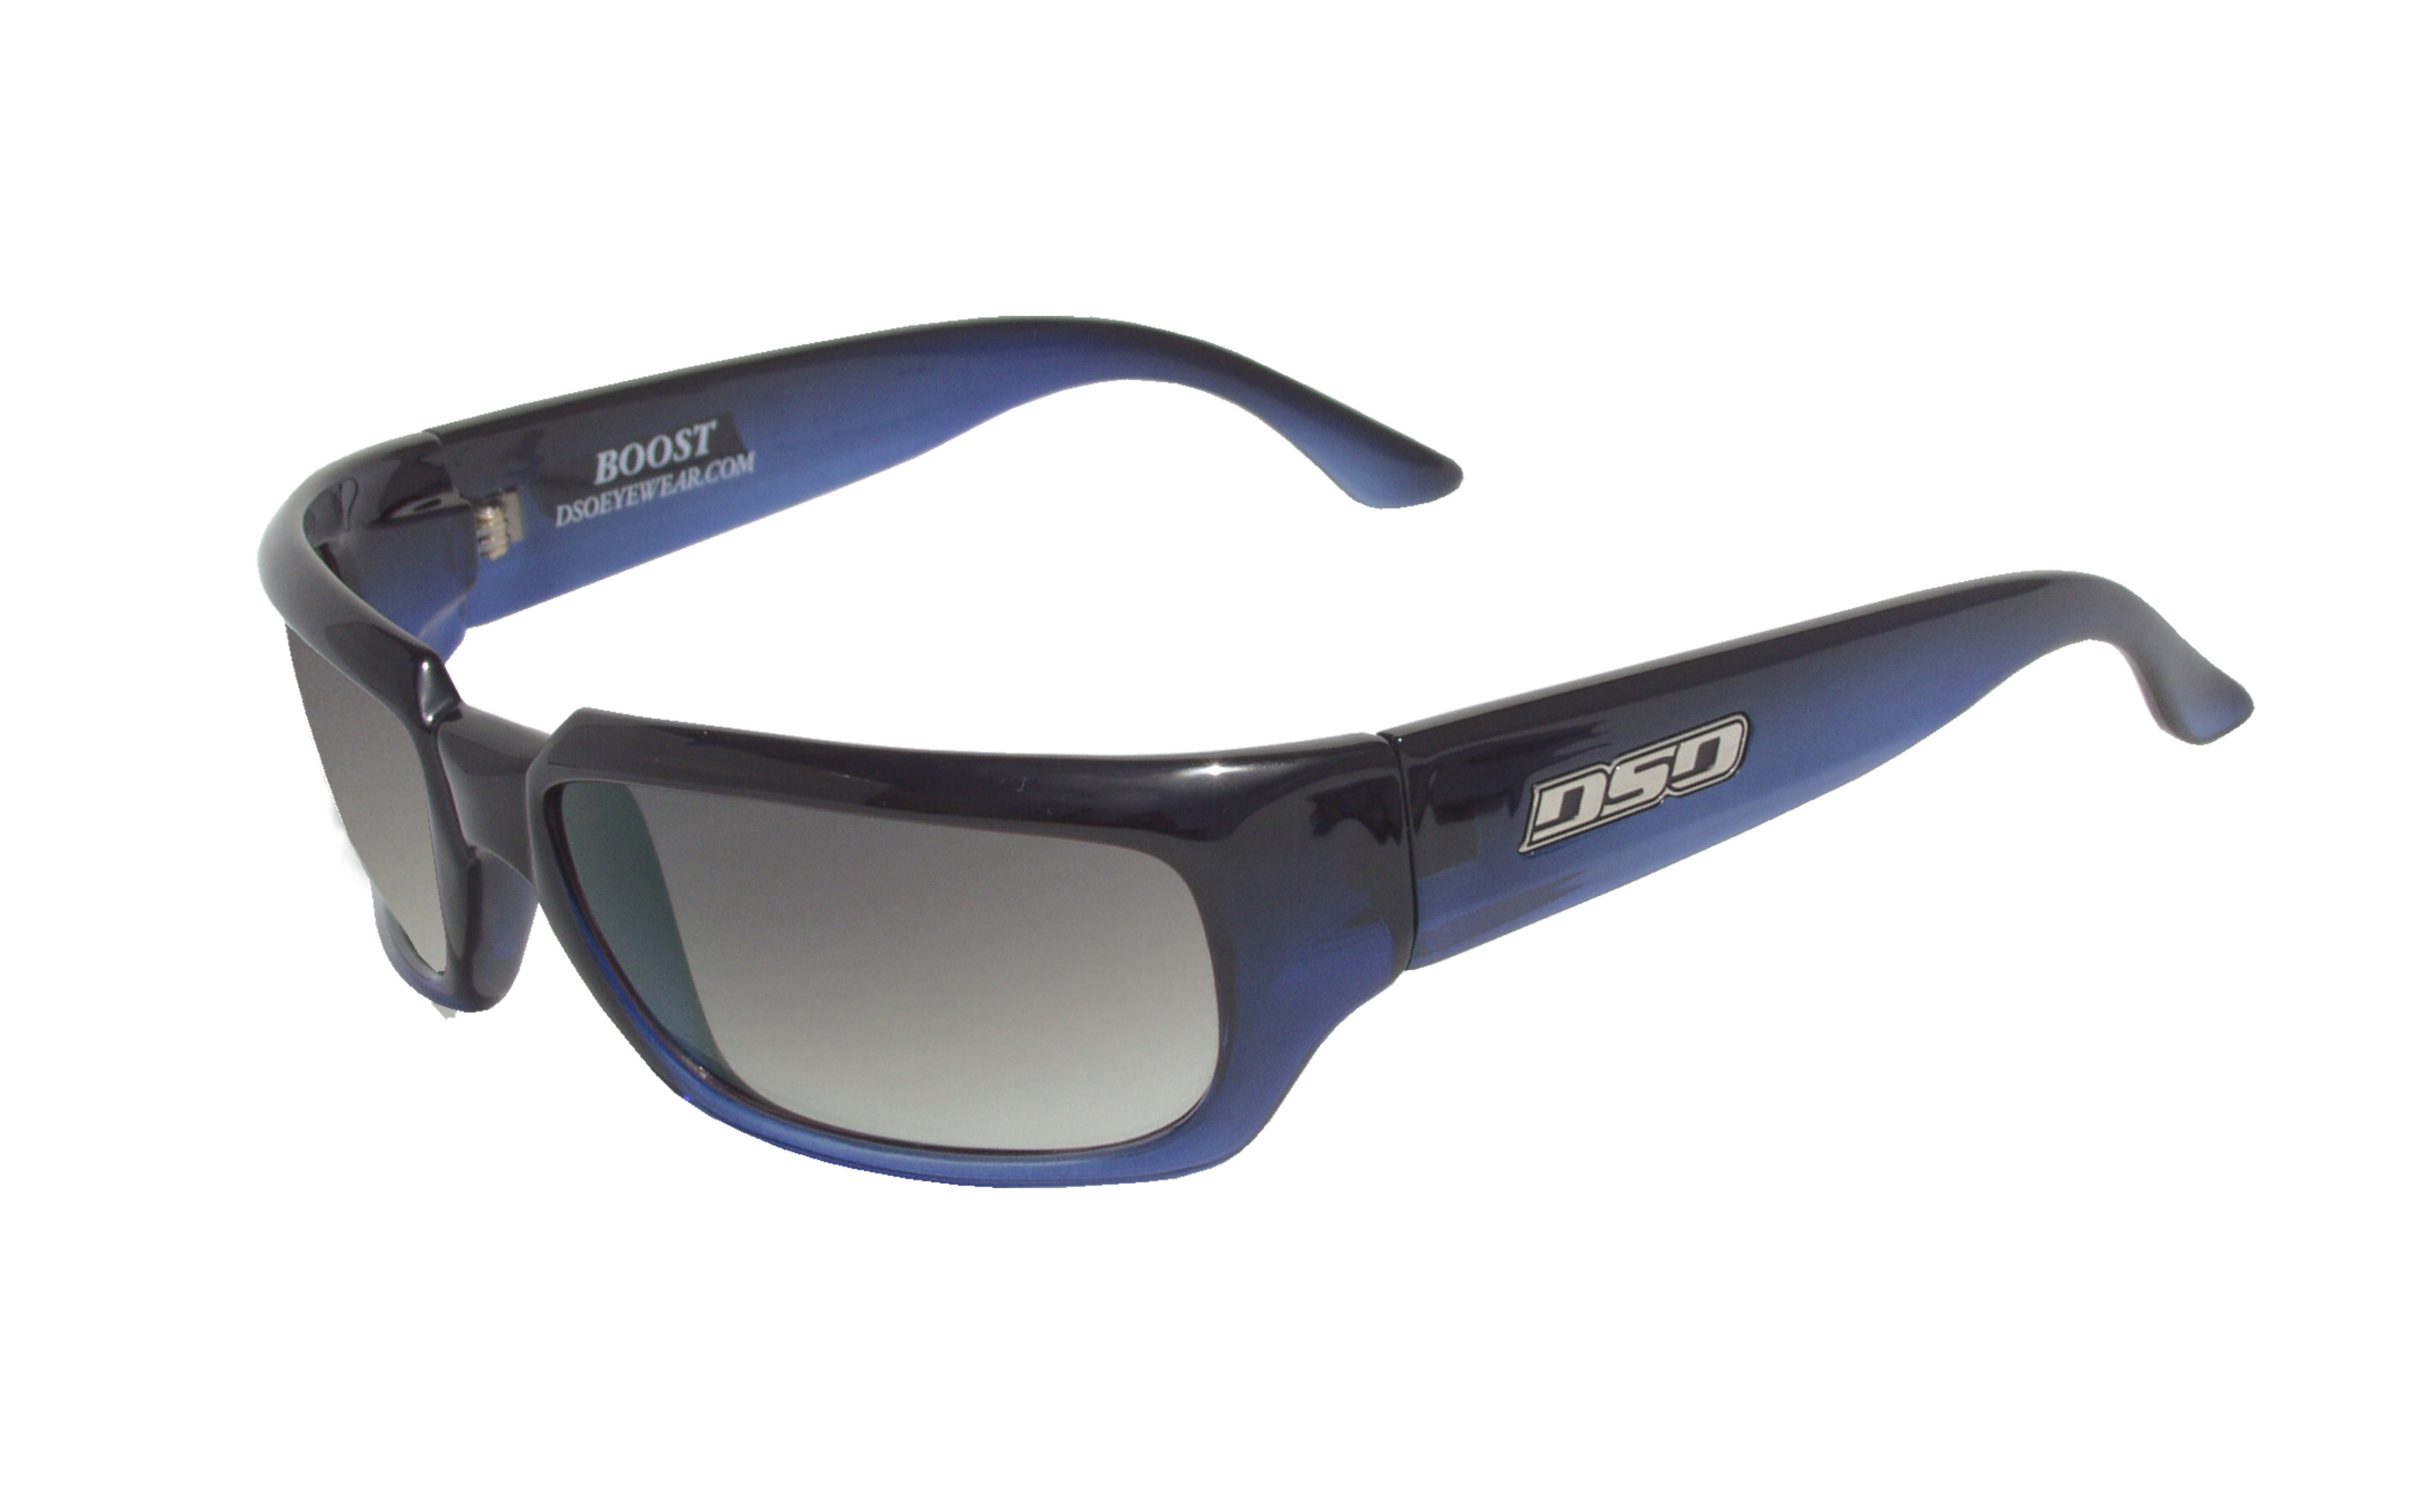 dso sunglasses  DSO Eyewear Sunglasses - 57 (Fifty Seven), Absolut, Anthem, Anthem ...